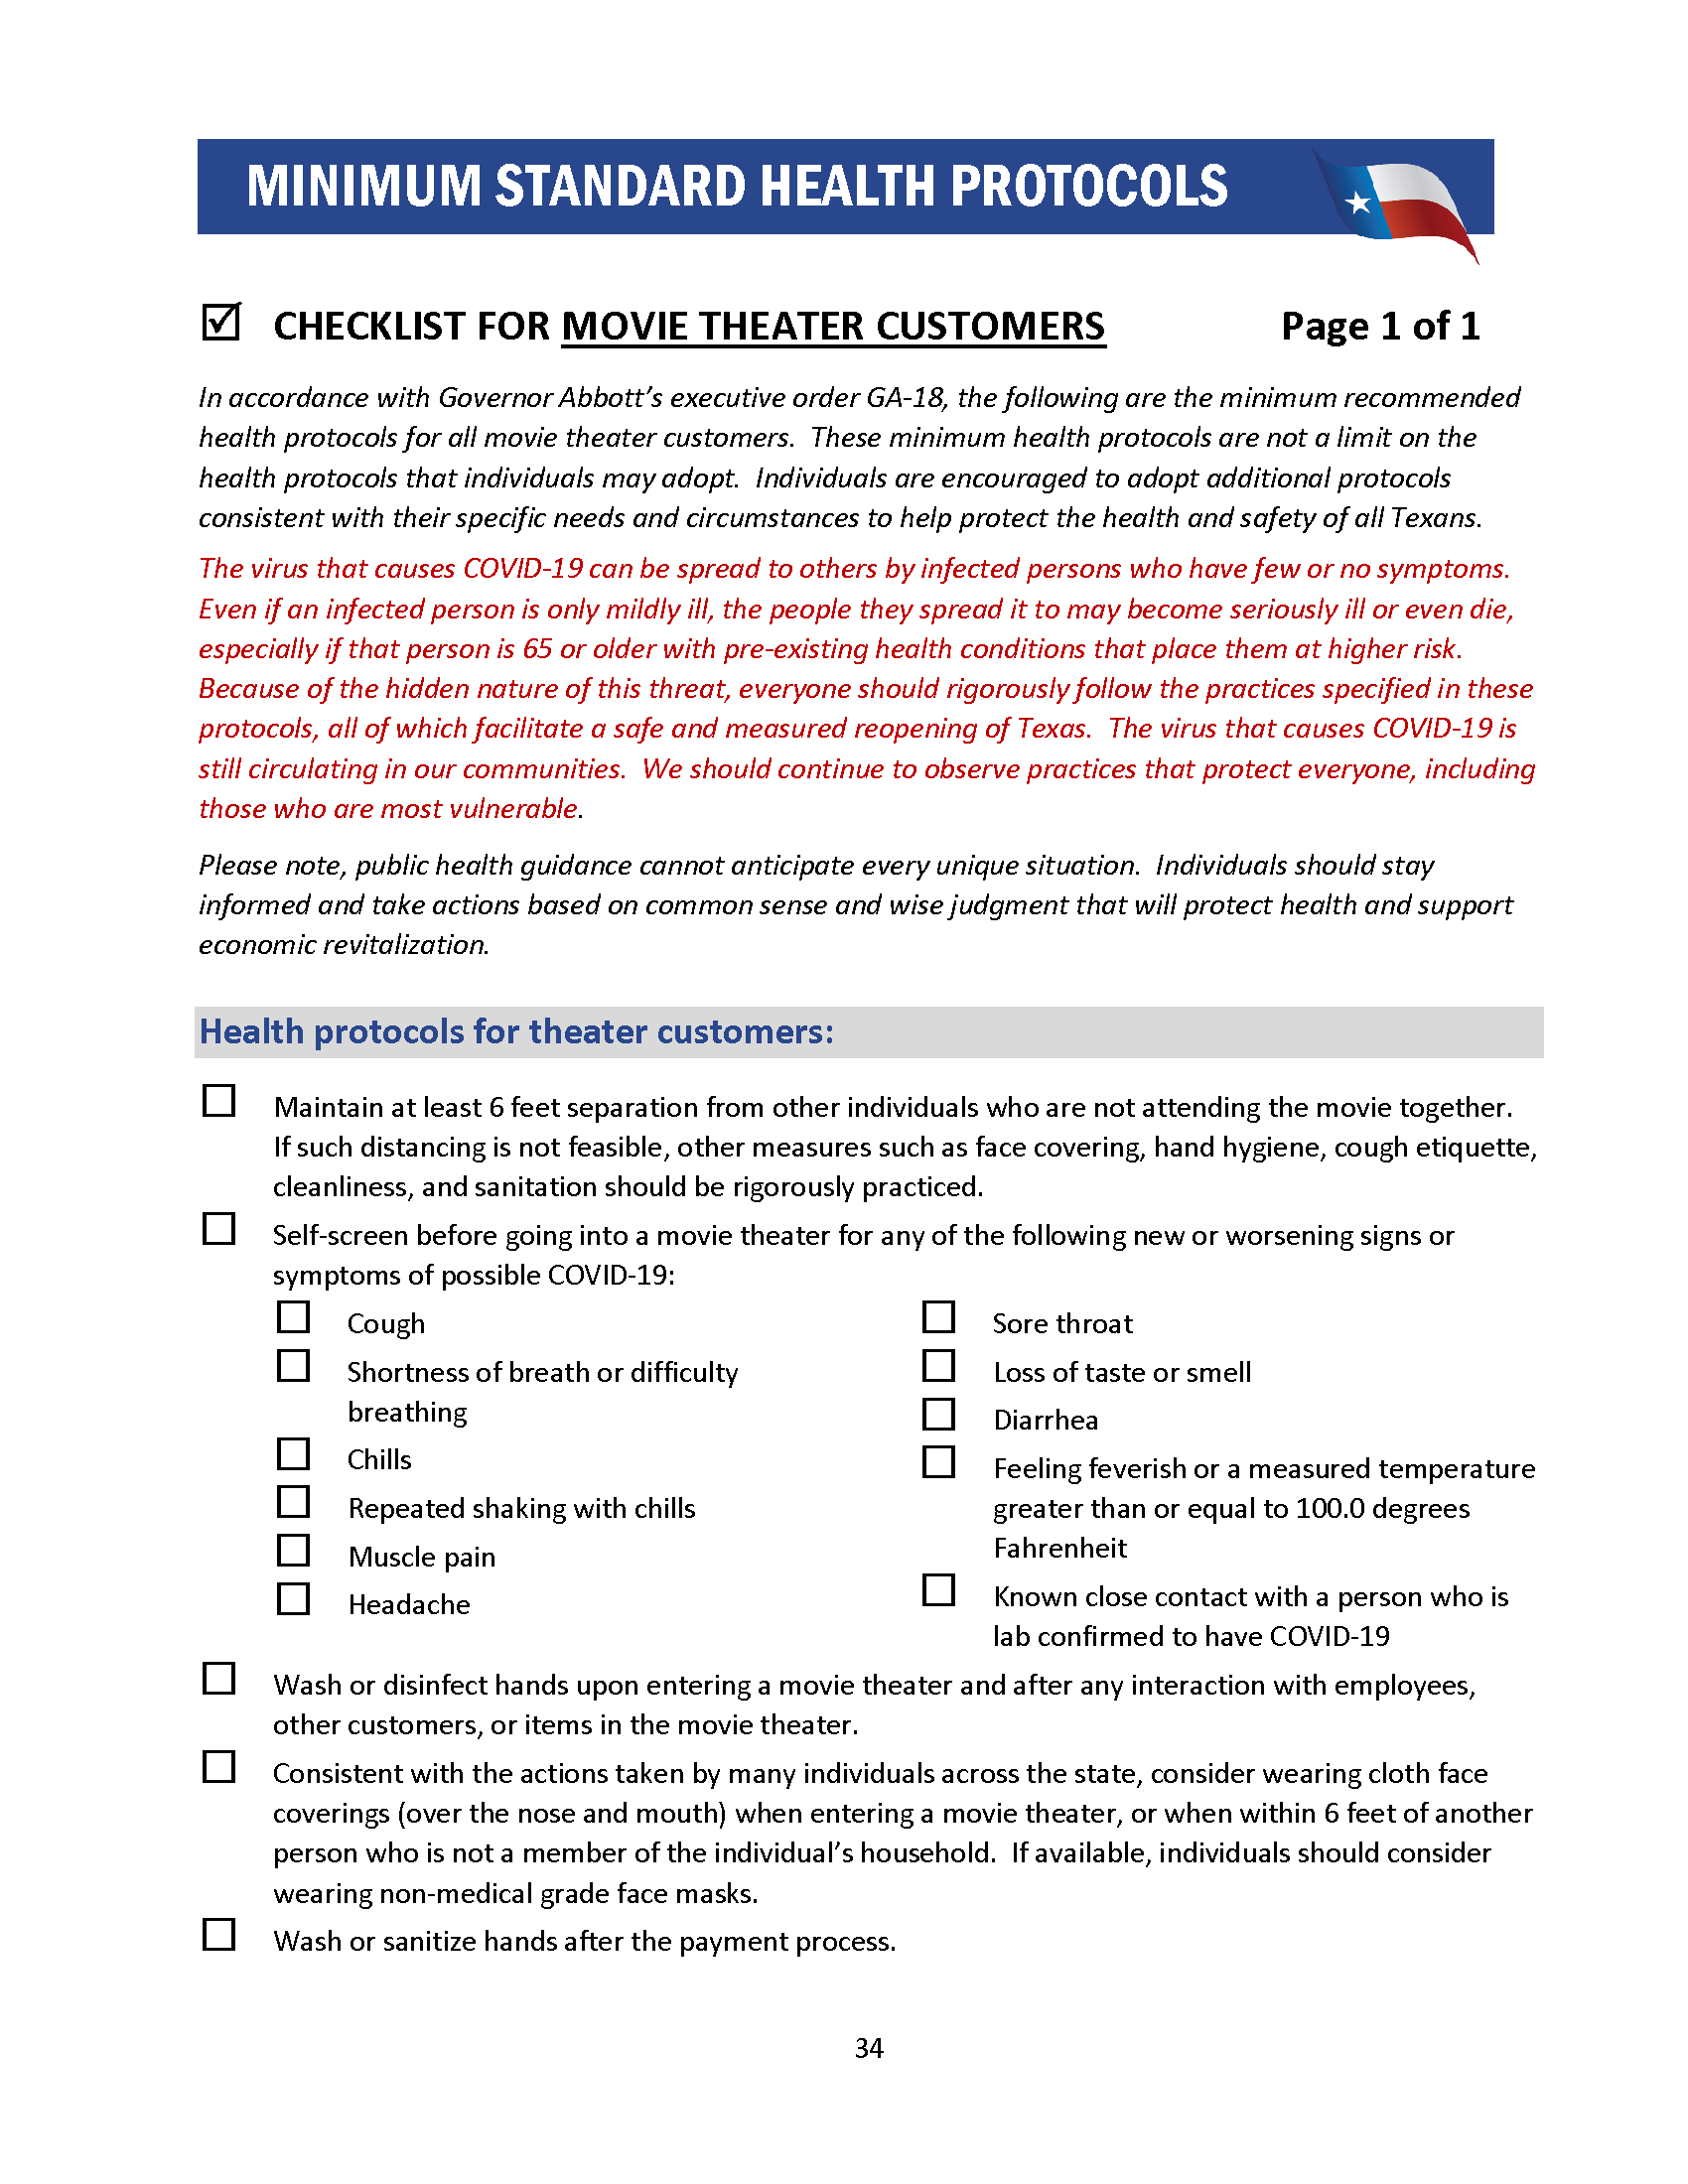 Cheecklist for Movie Theater Customers